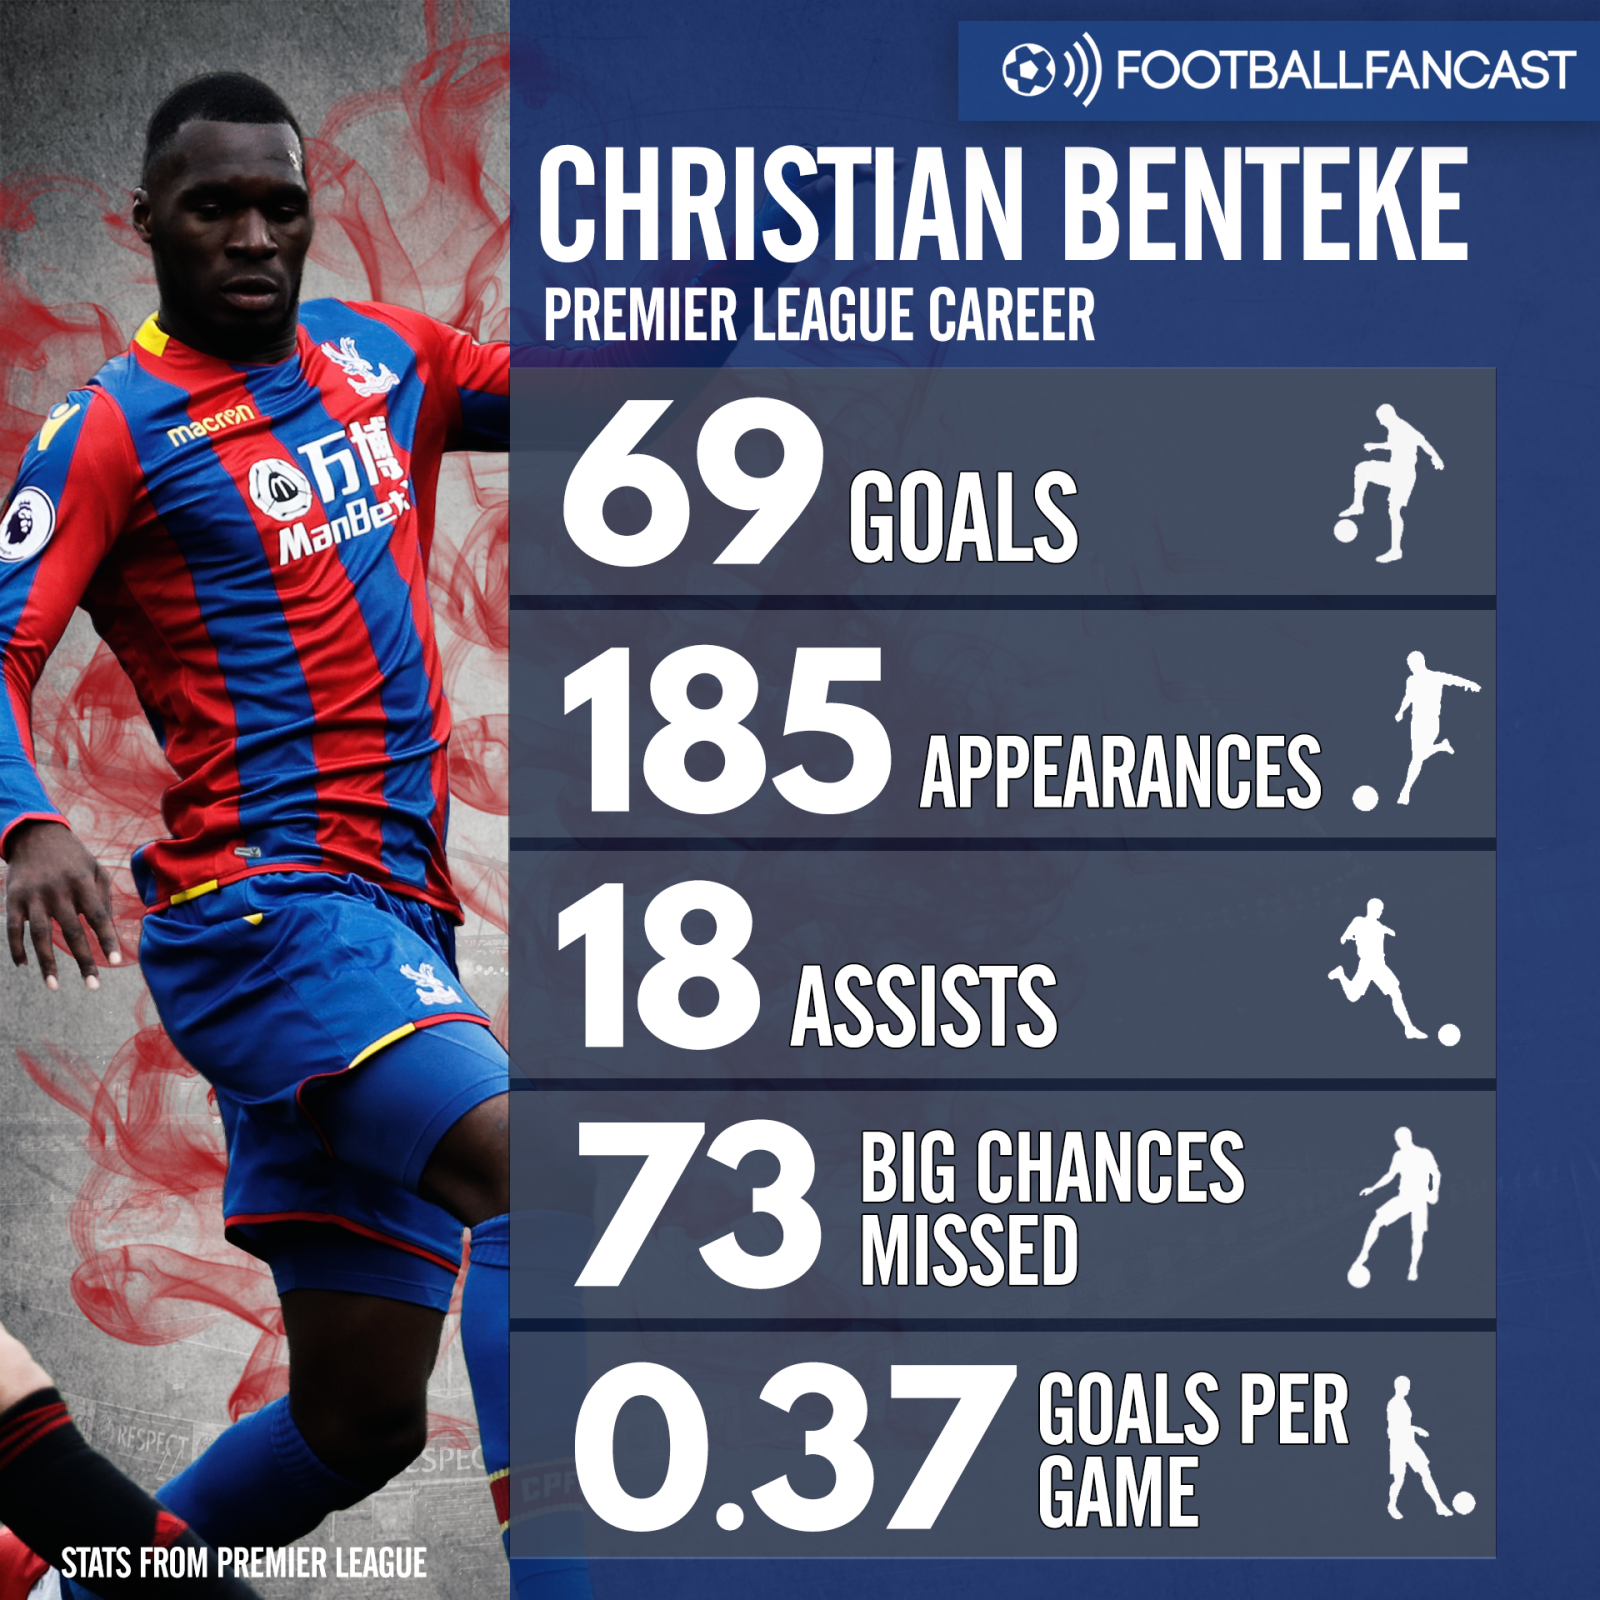 Christian Benteke's career stats